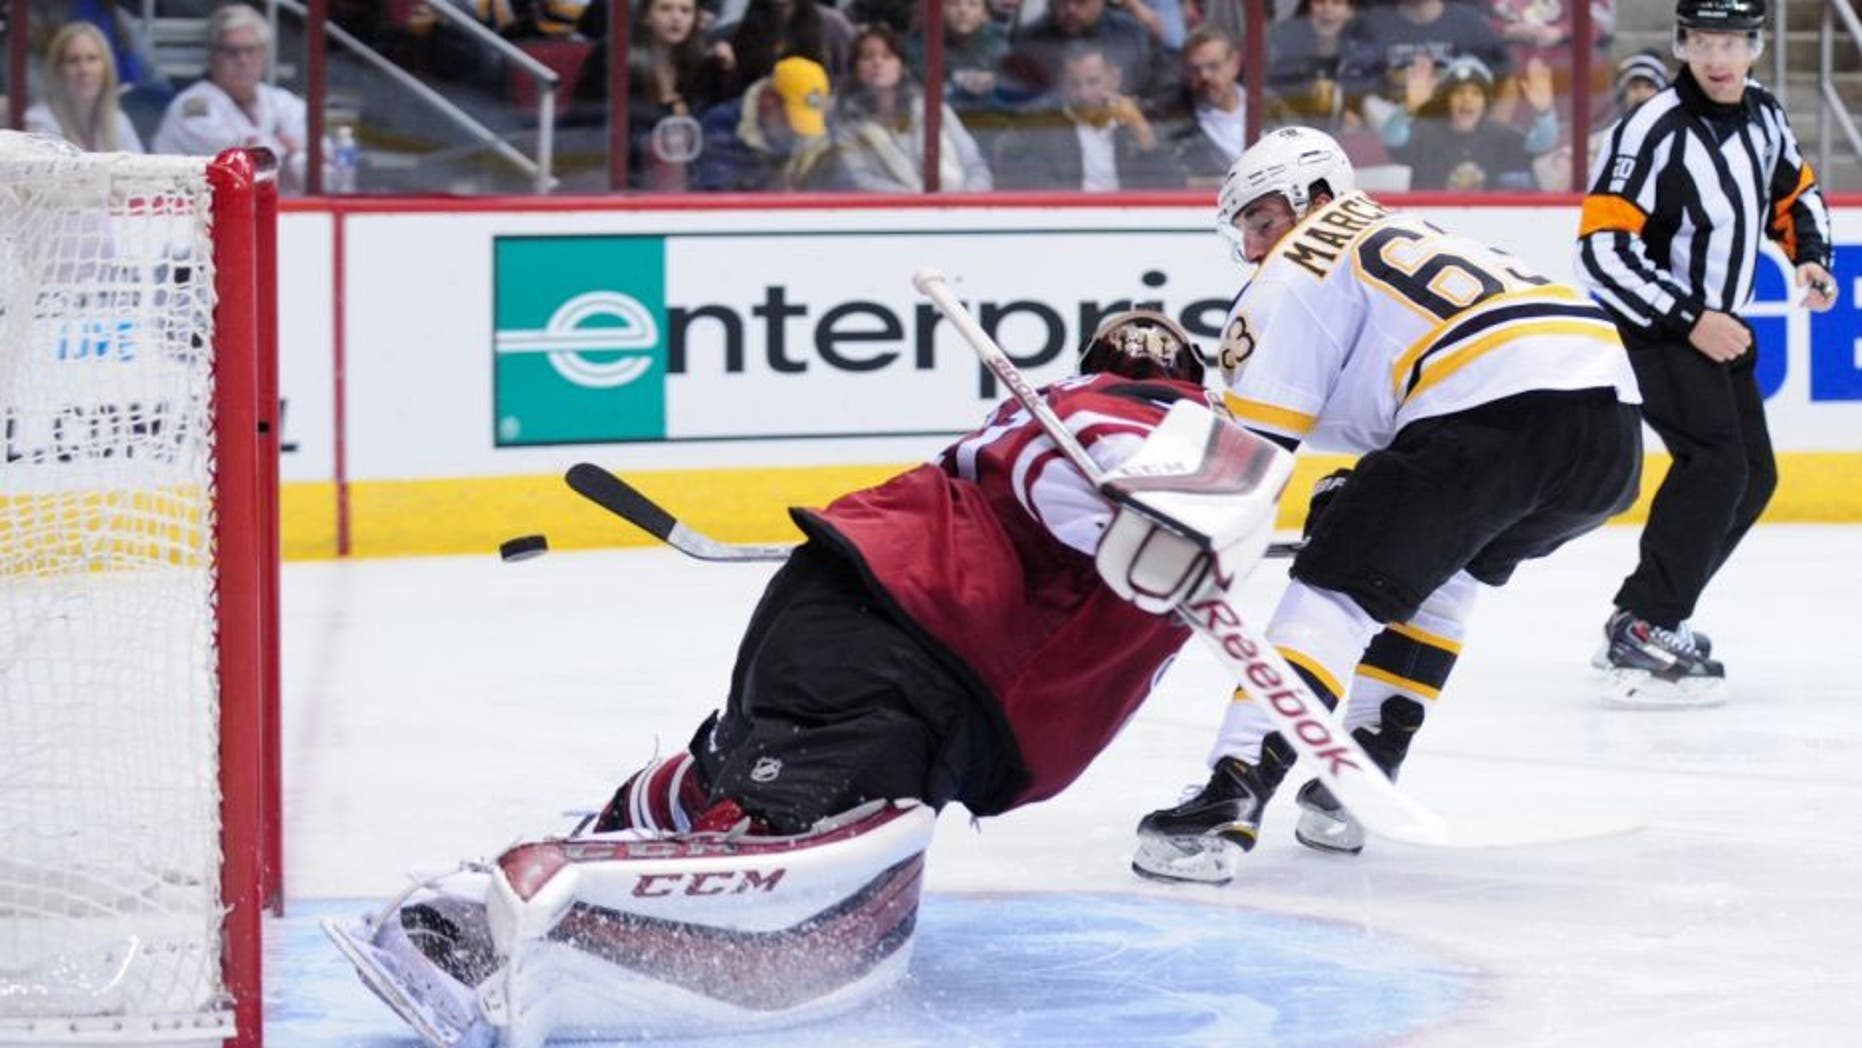 Oct 17, 2015; Glendale, AZ, USA; Boston Bruins left wing Brad Marchand (63) scores on Arizona Coyotes goalie Mike Smith (41) during the third period at Gila River Arena. Mandatory Credit: Matt Kartozian-USA TODAY Sports